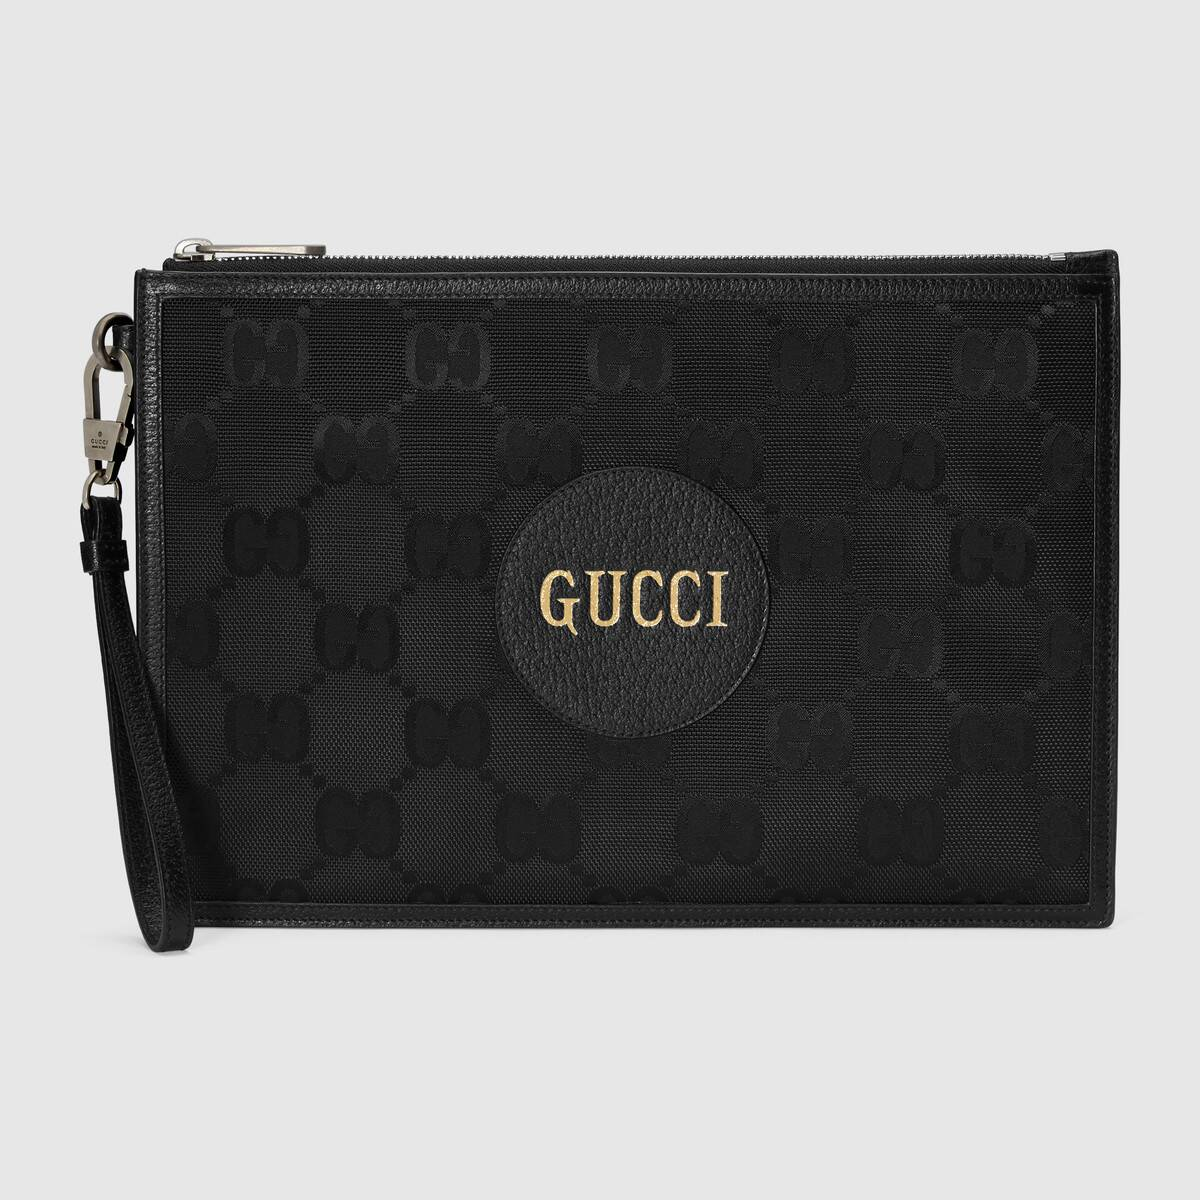 625598_H9HAN_1000_001_100_0000_Light-Gucci-Off-The-Grid